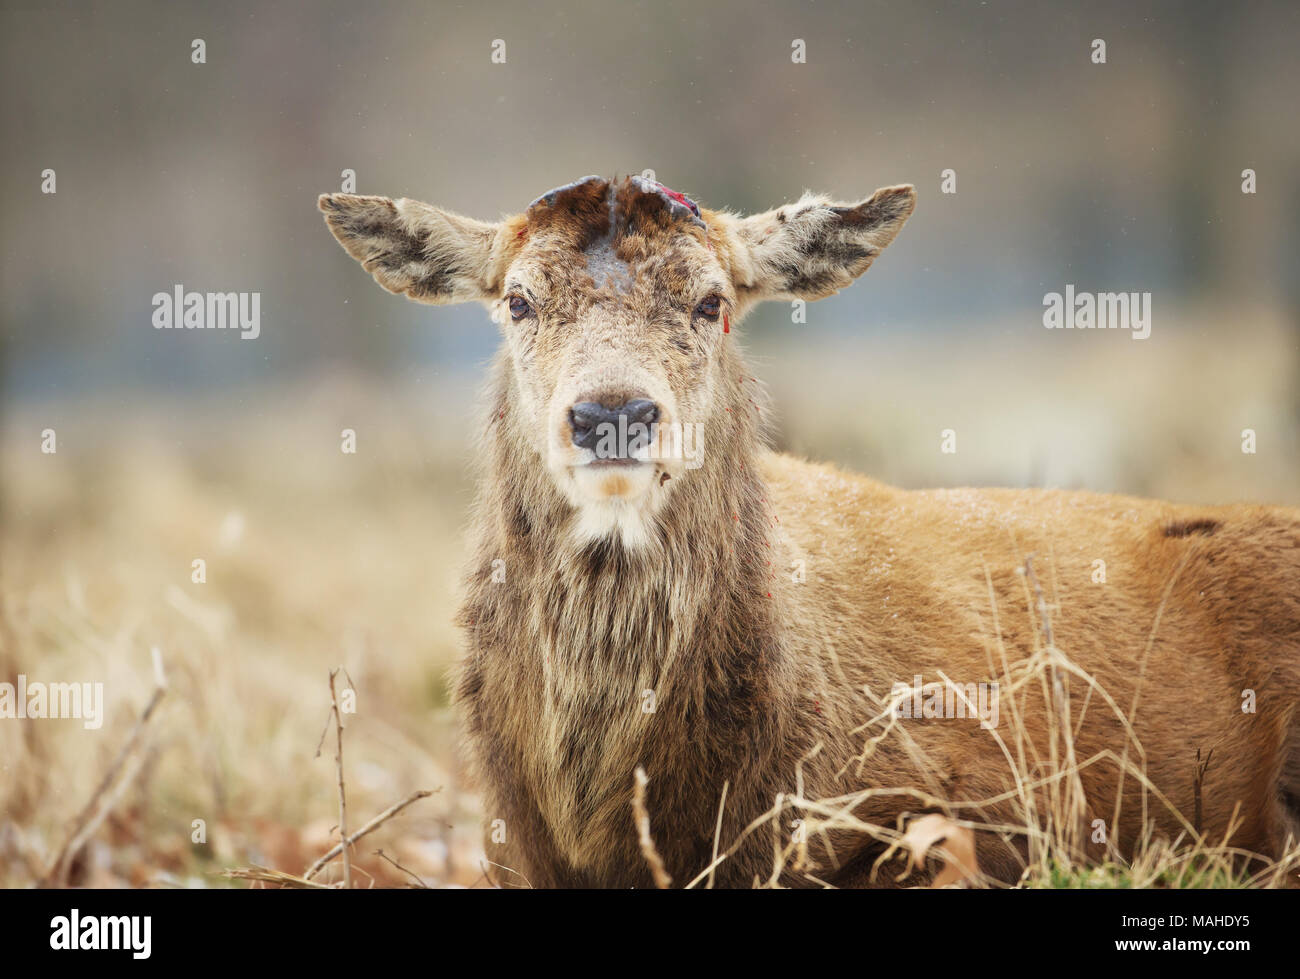 Close - up of a Red deer having recently shed his antlers in winter, UK - Stock Image